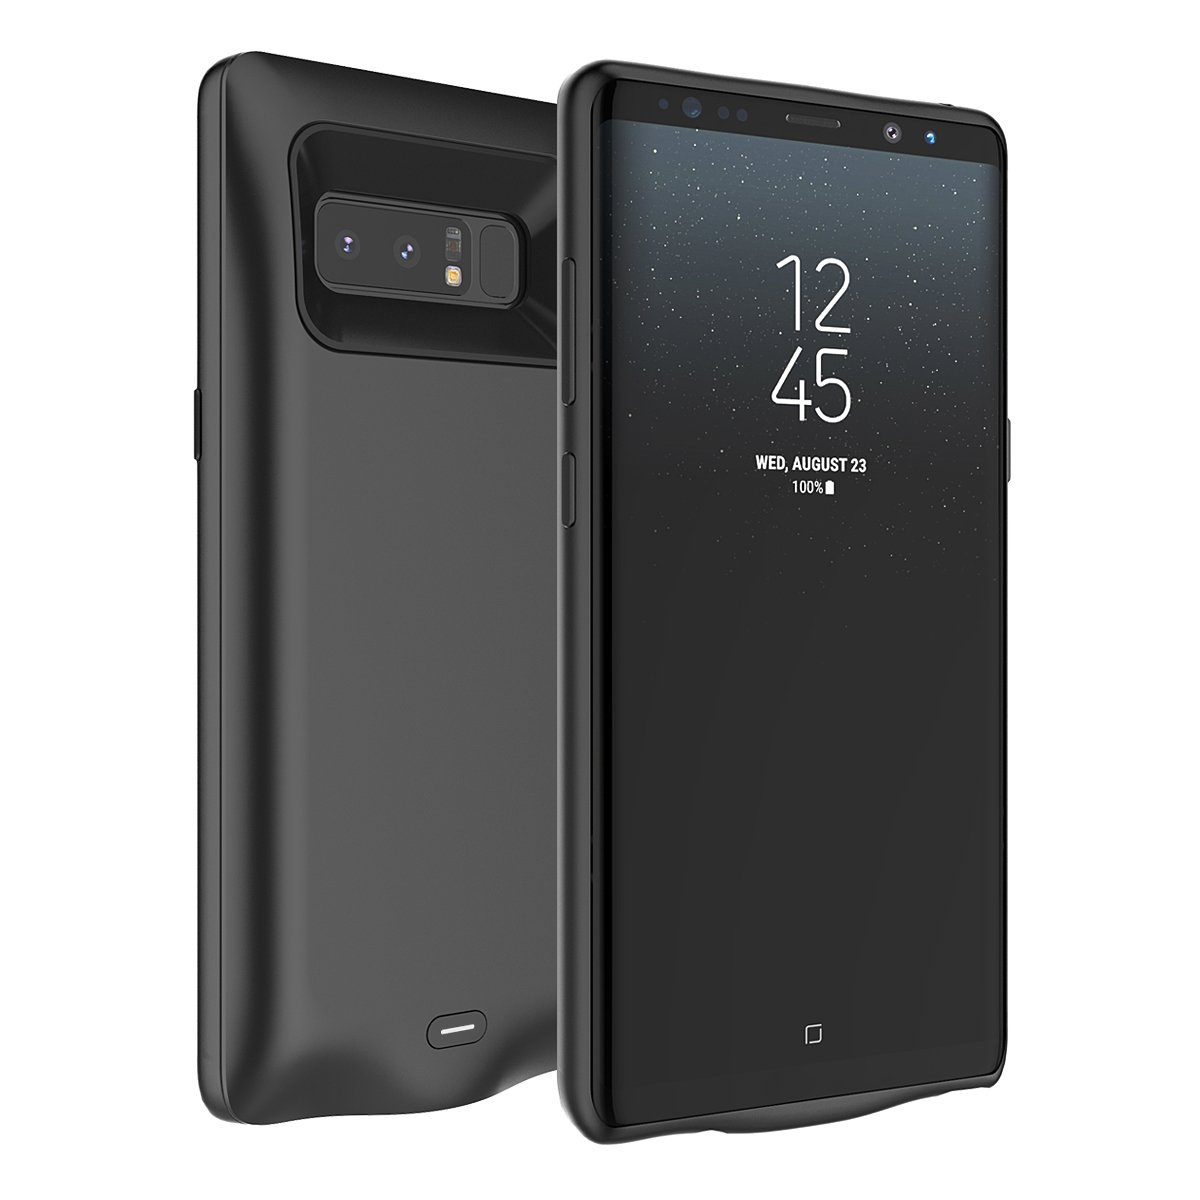 Moonmini Samsung Galaxy Note 8 Battery Case 5500mah Charger Circuit Schematic Index 25 Power External Rechargeable Portable Extended Pack Bank Backup Charging